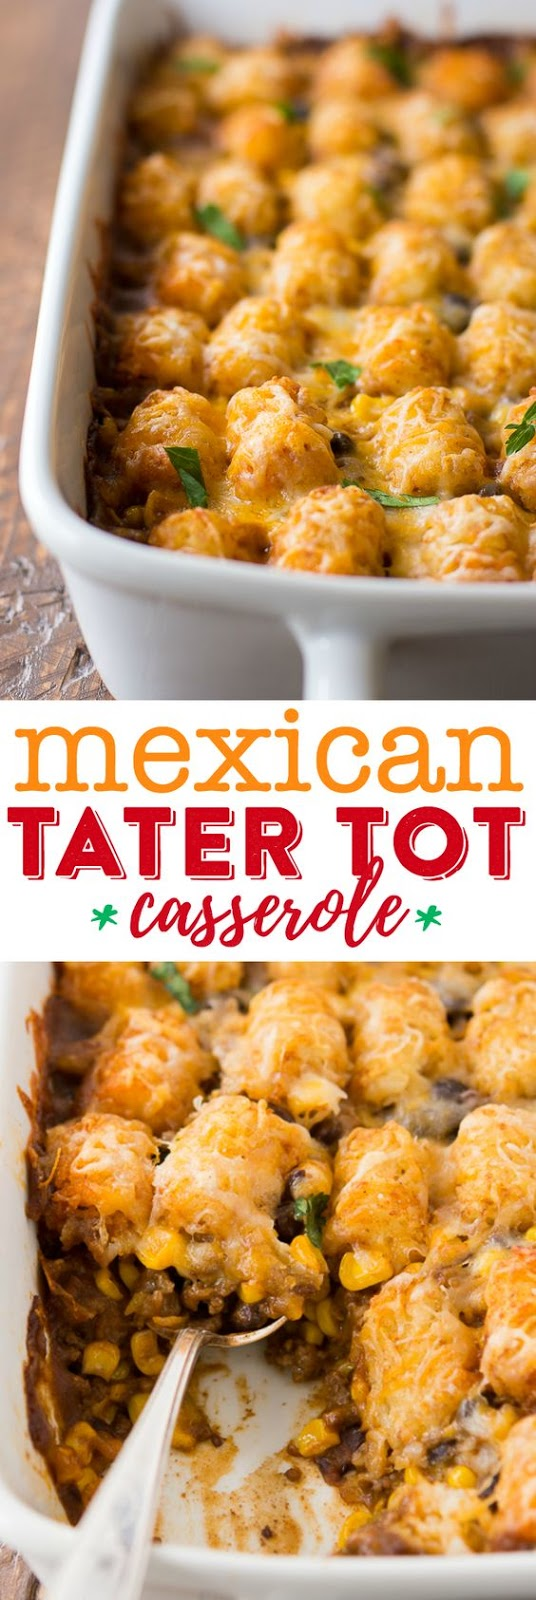 MEXICAN TATER TOT CASSEROLE #tatertotcasserole #easyrecipes #dinnerideas #dinnerrecipes #lunchideas #lunchrecipes #casserole